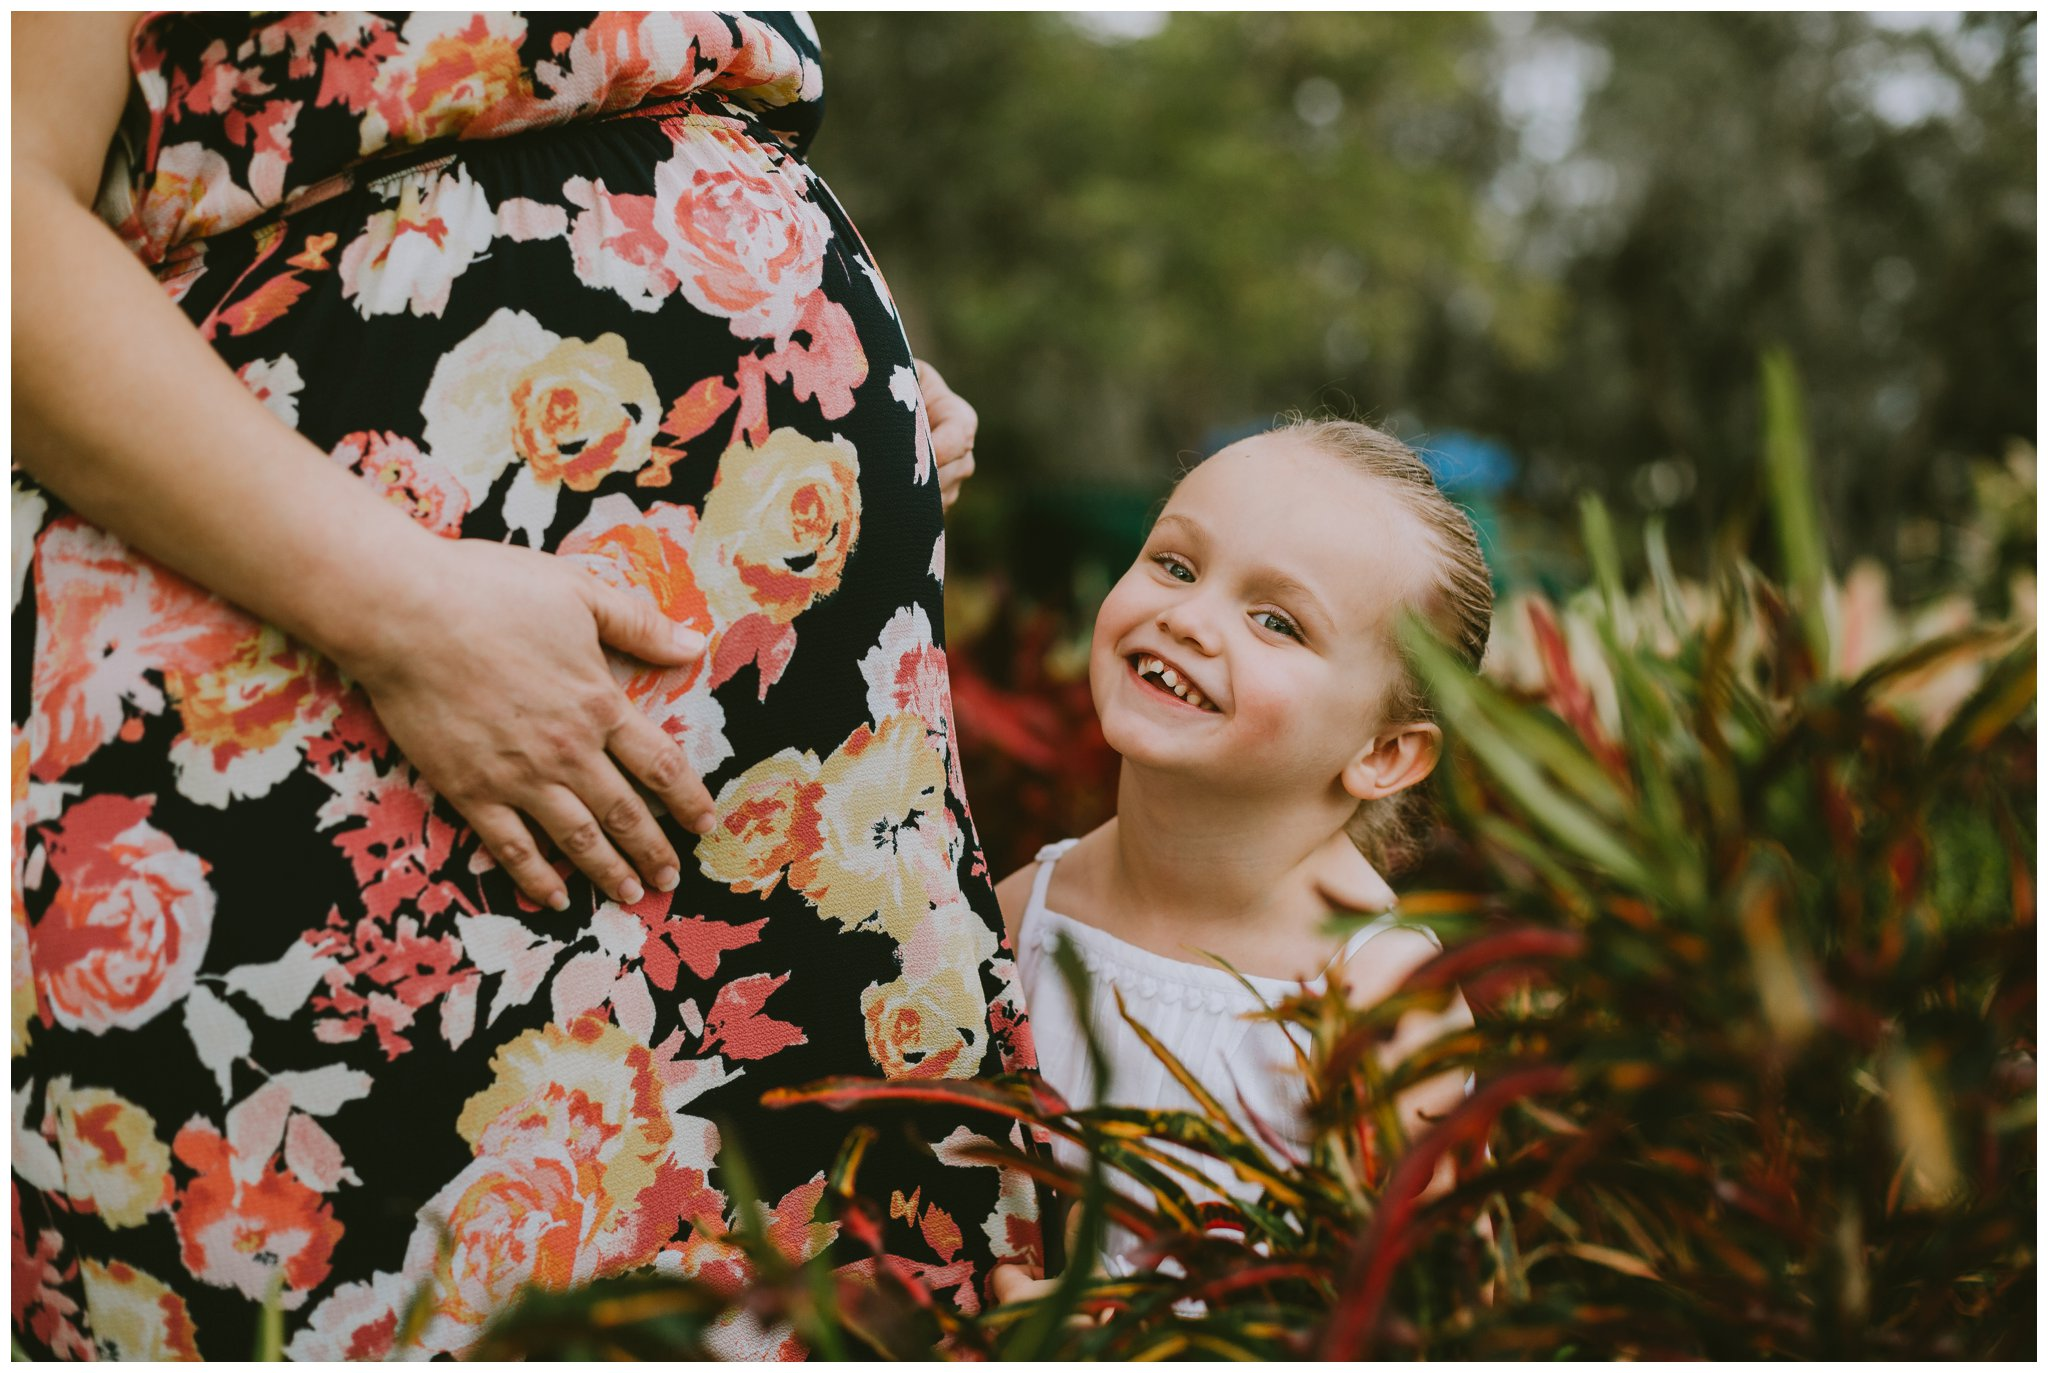 Kimberly Smith Photography| Port St Lucie Botanical Gardens| Maternity Photos| Jupiter Florida Photographer | Stuart Fl photographer_0189.jpg